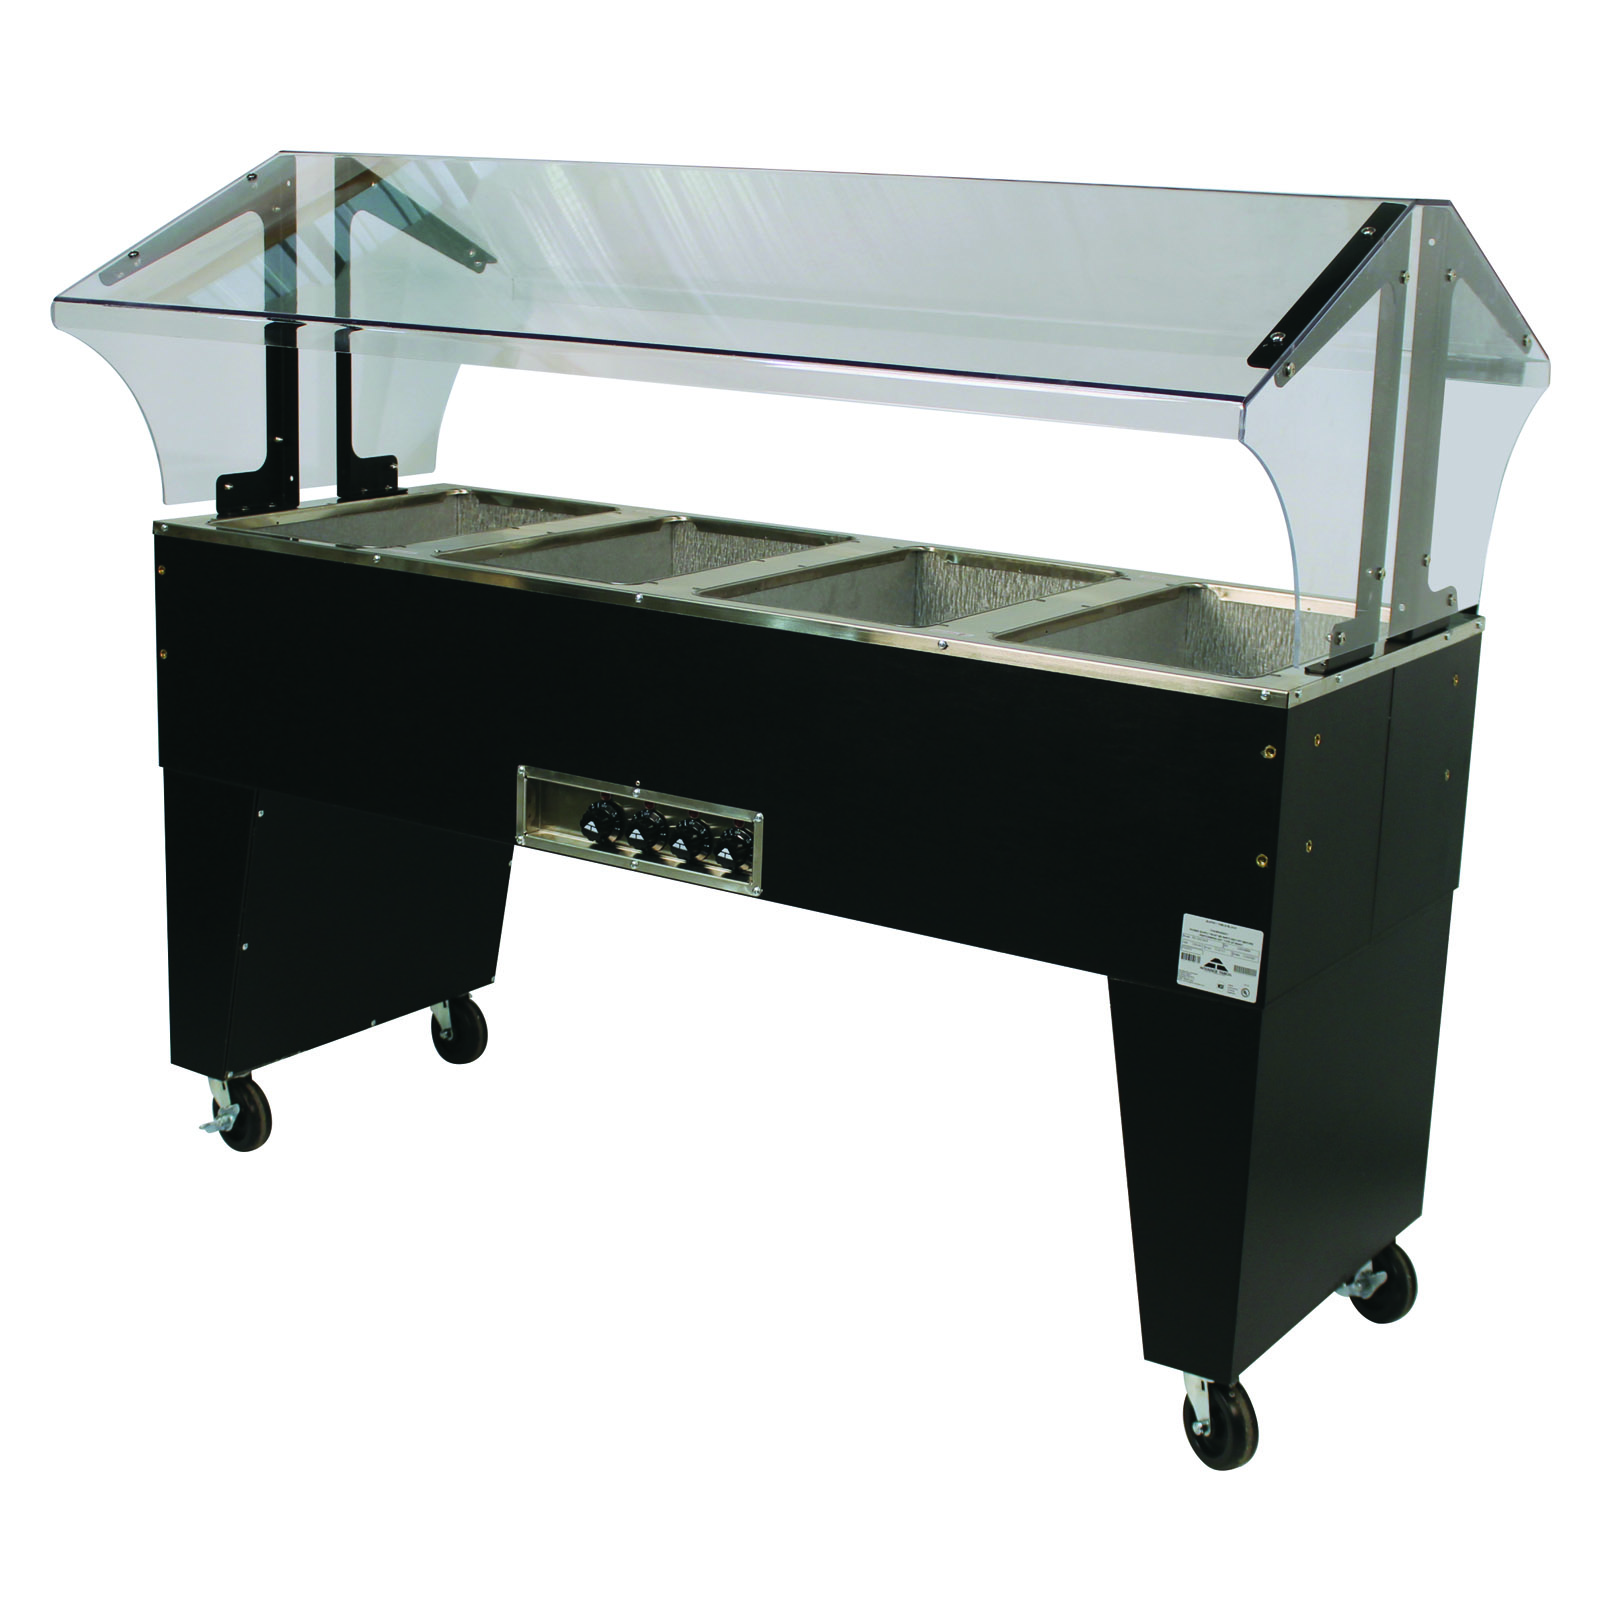 Advance Tabco B4-120-B-S serving counter, hot food, electric